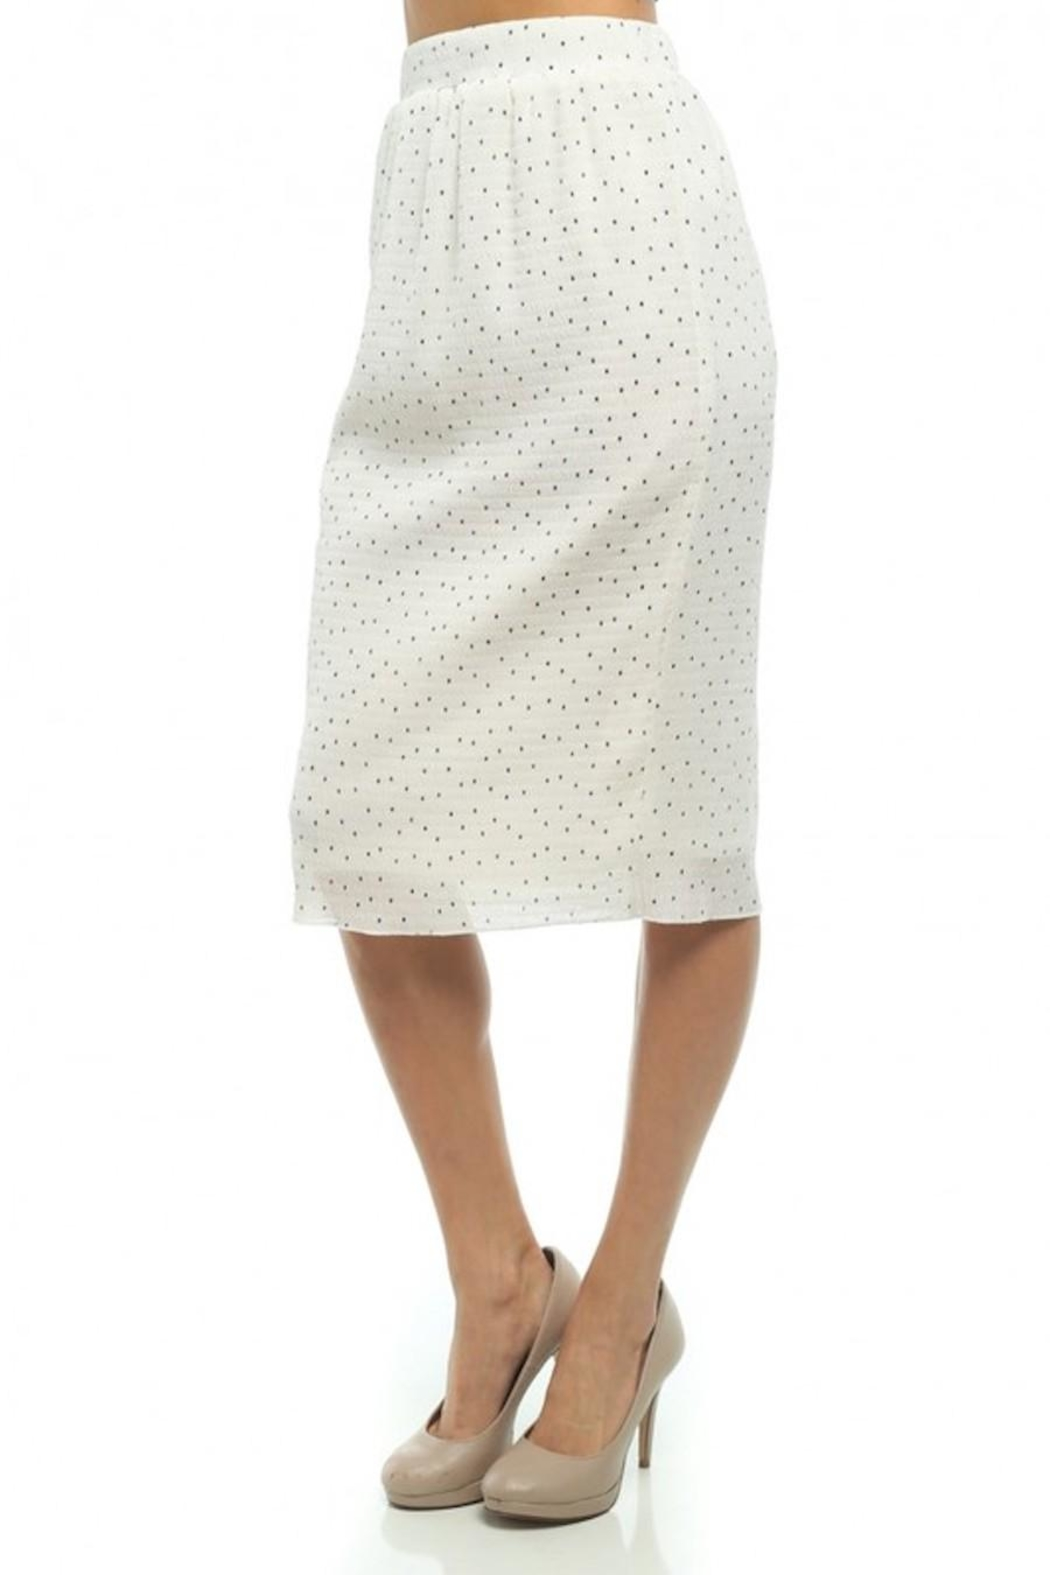 Moon Collection Dainty-Dots Pencil Skirt - Front Full Image